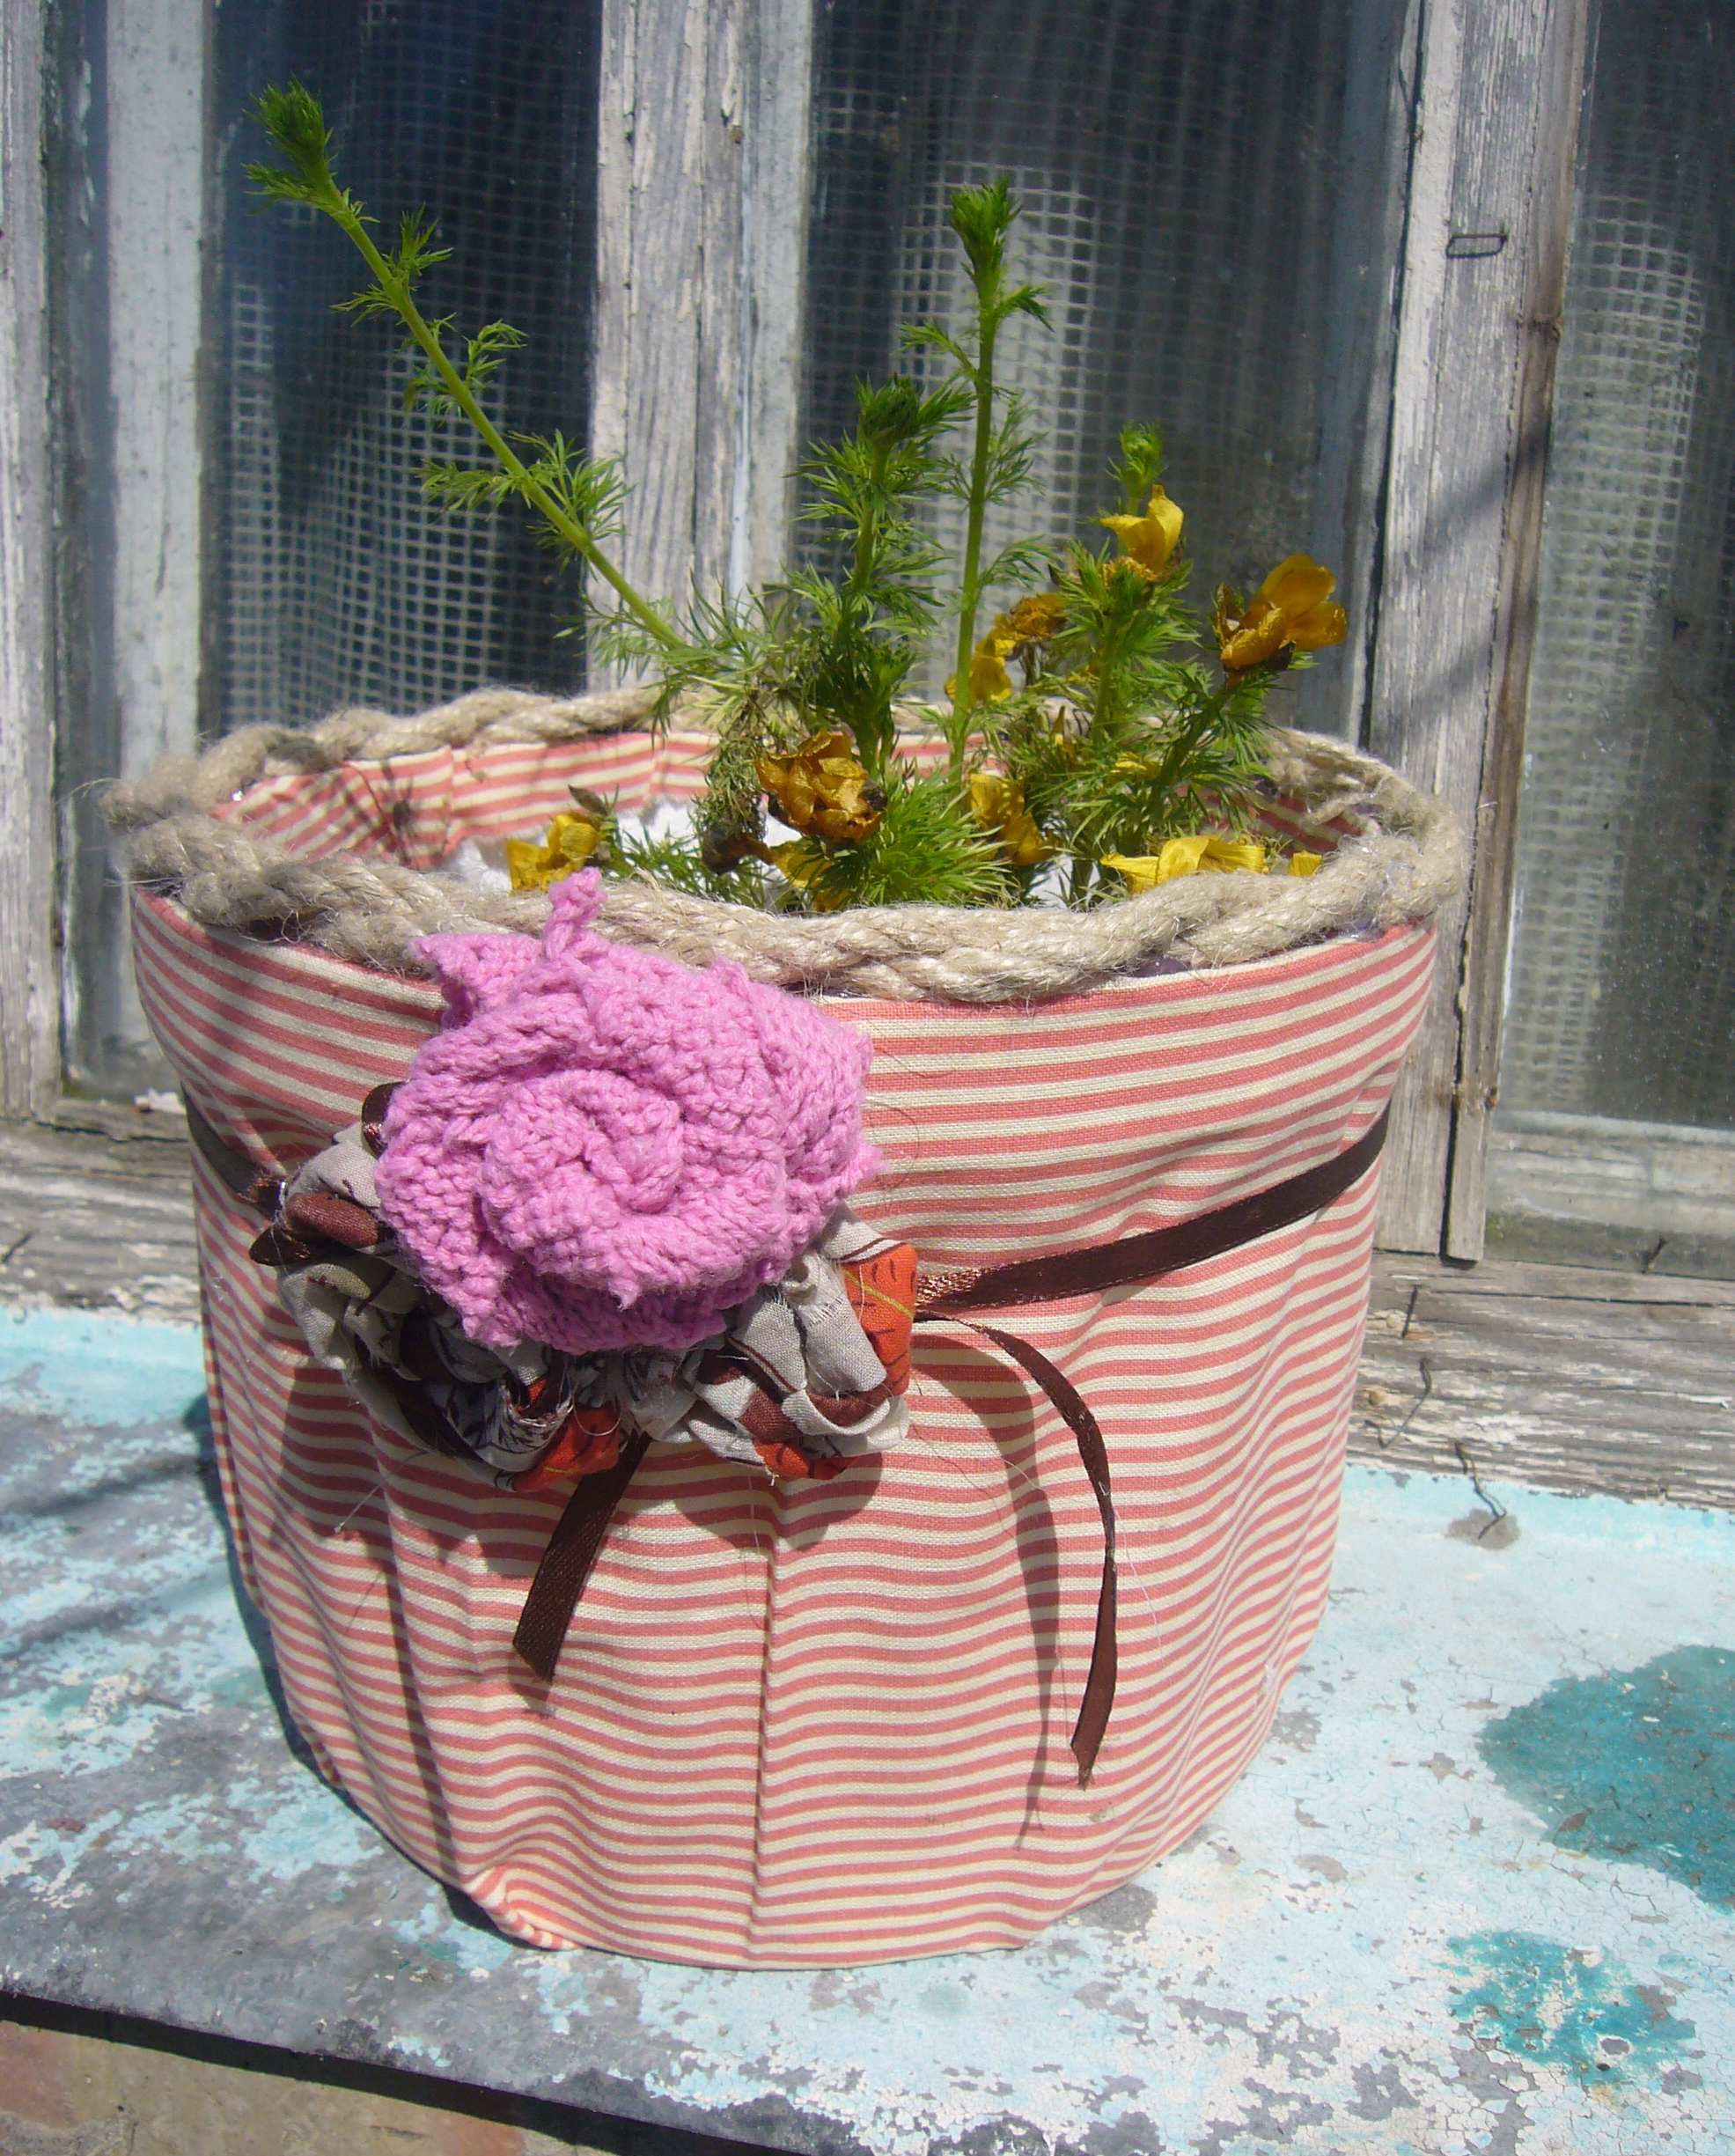 Diy Recycled Planters: DIY Crafts, Decoupage Ideas, Recycled Crafts